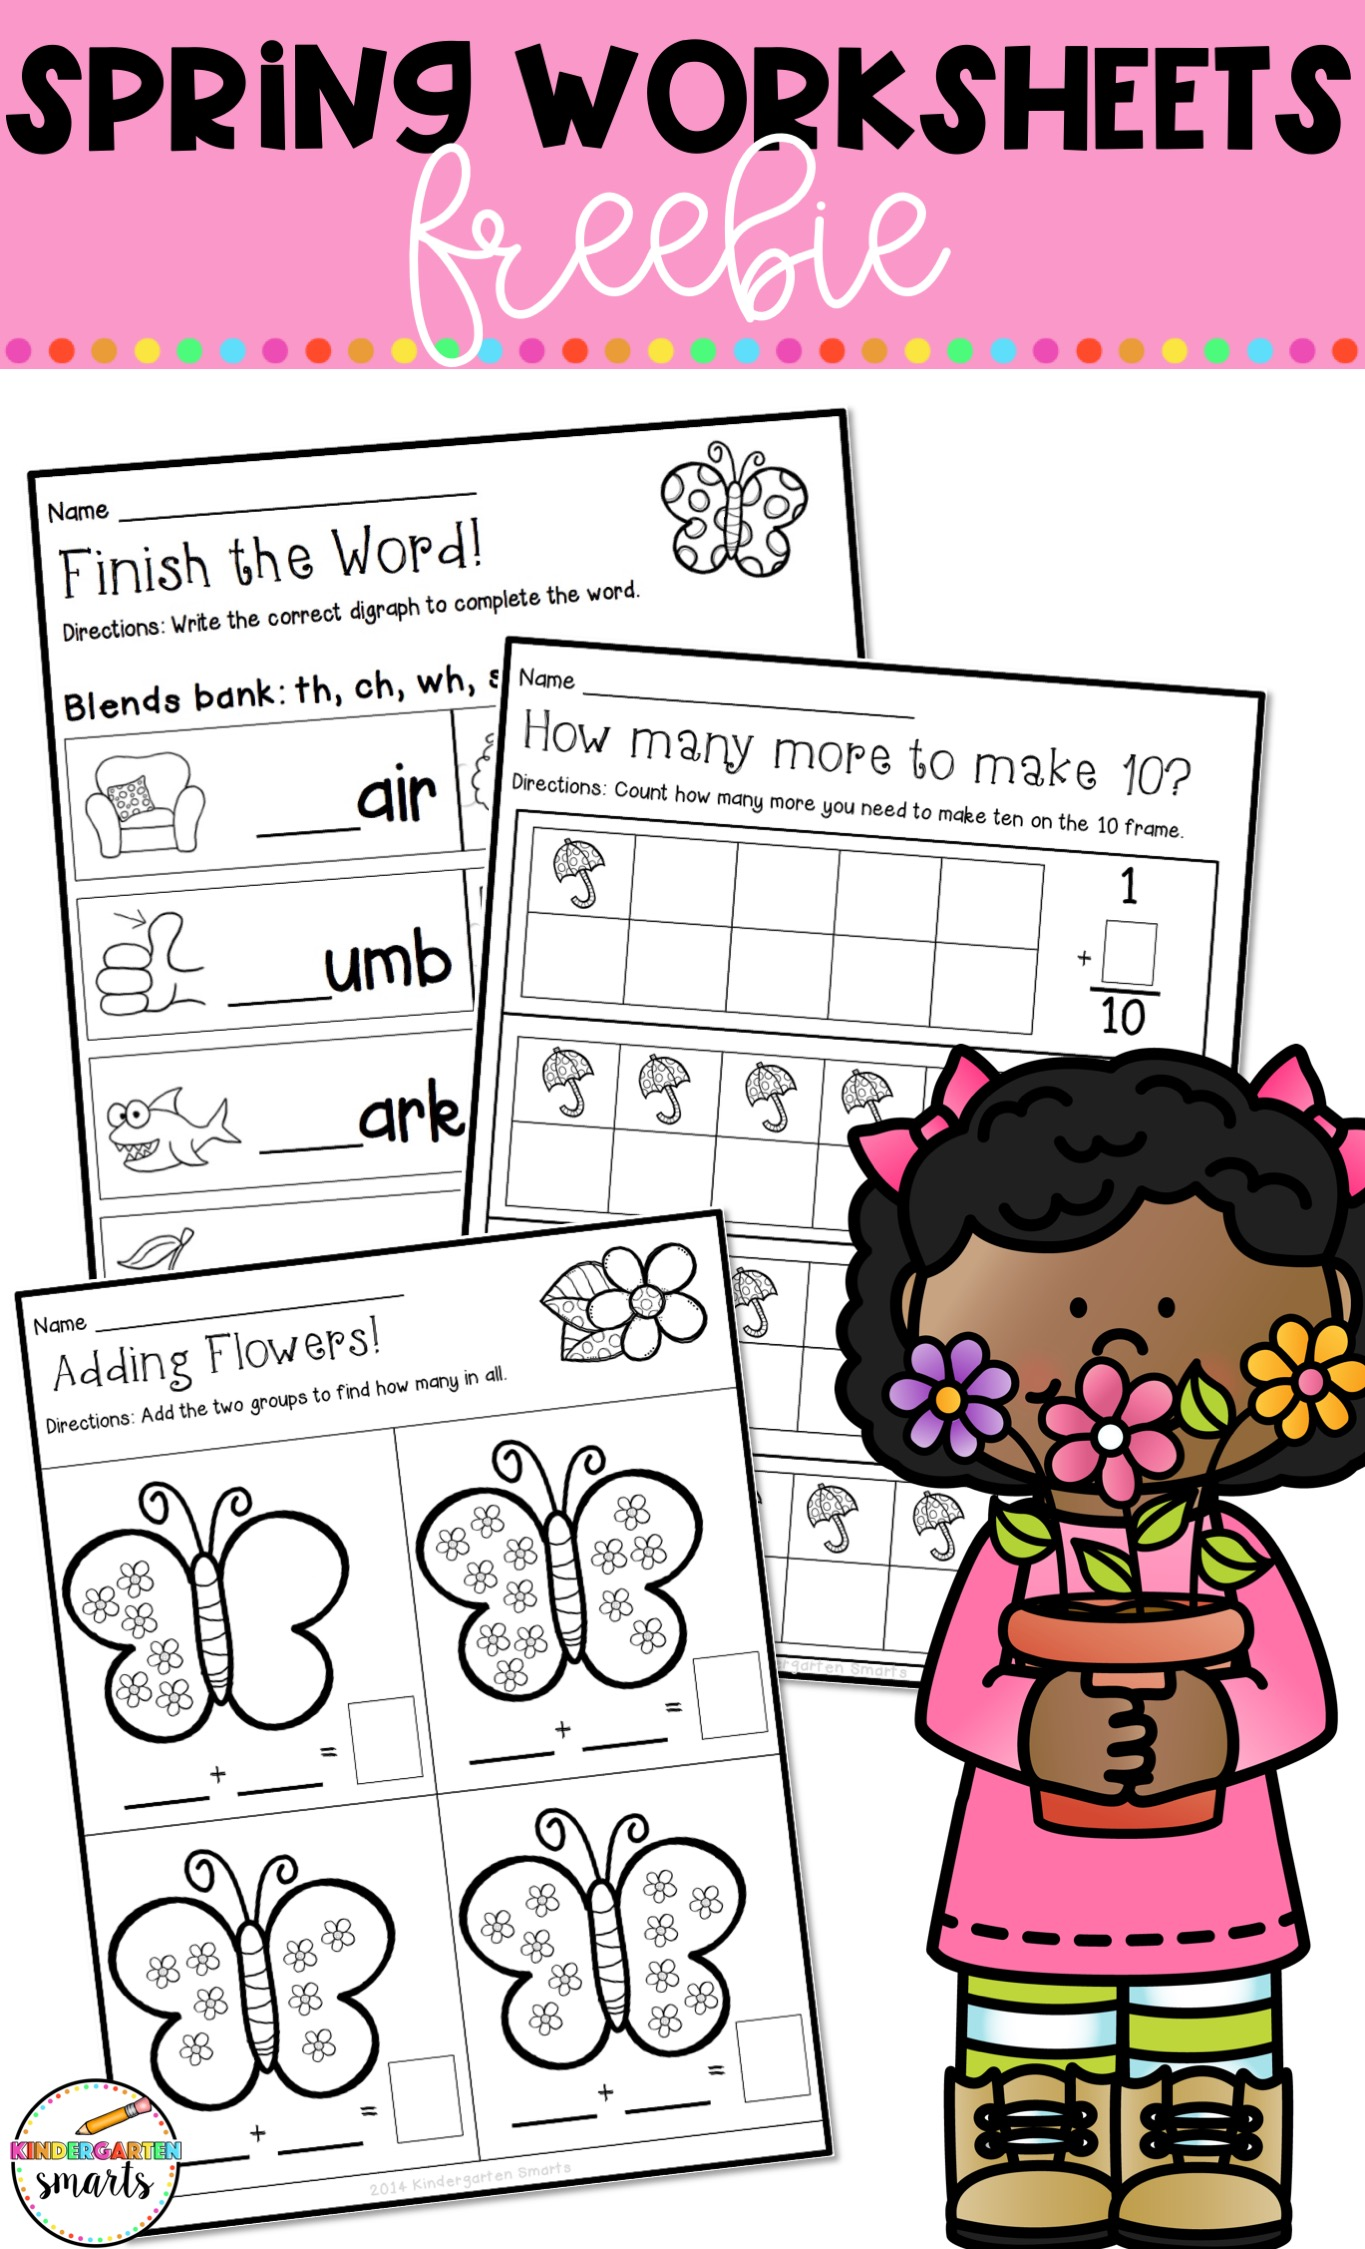 Spring Worksheets Freebie